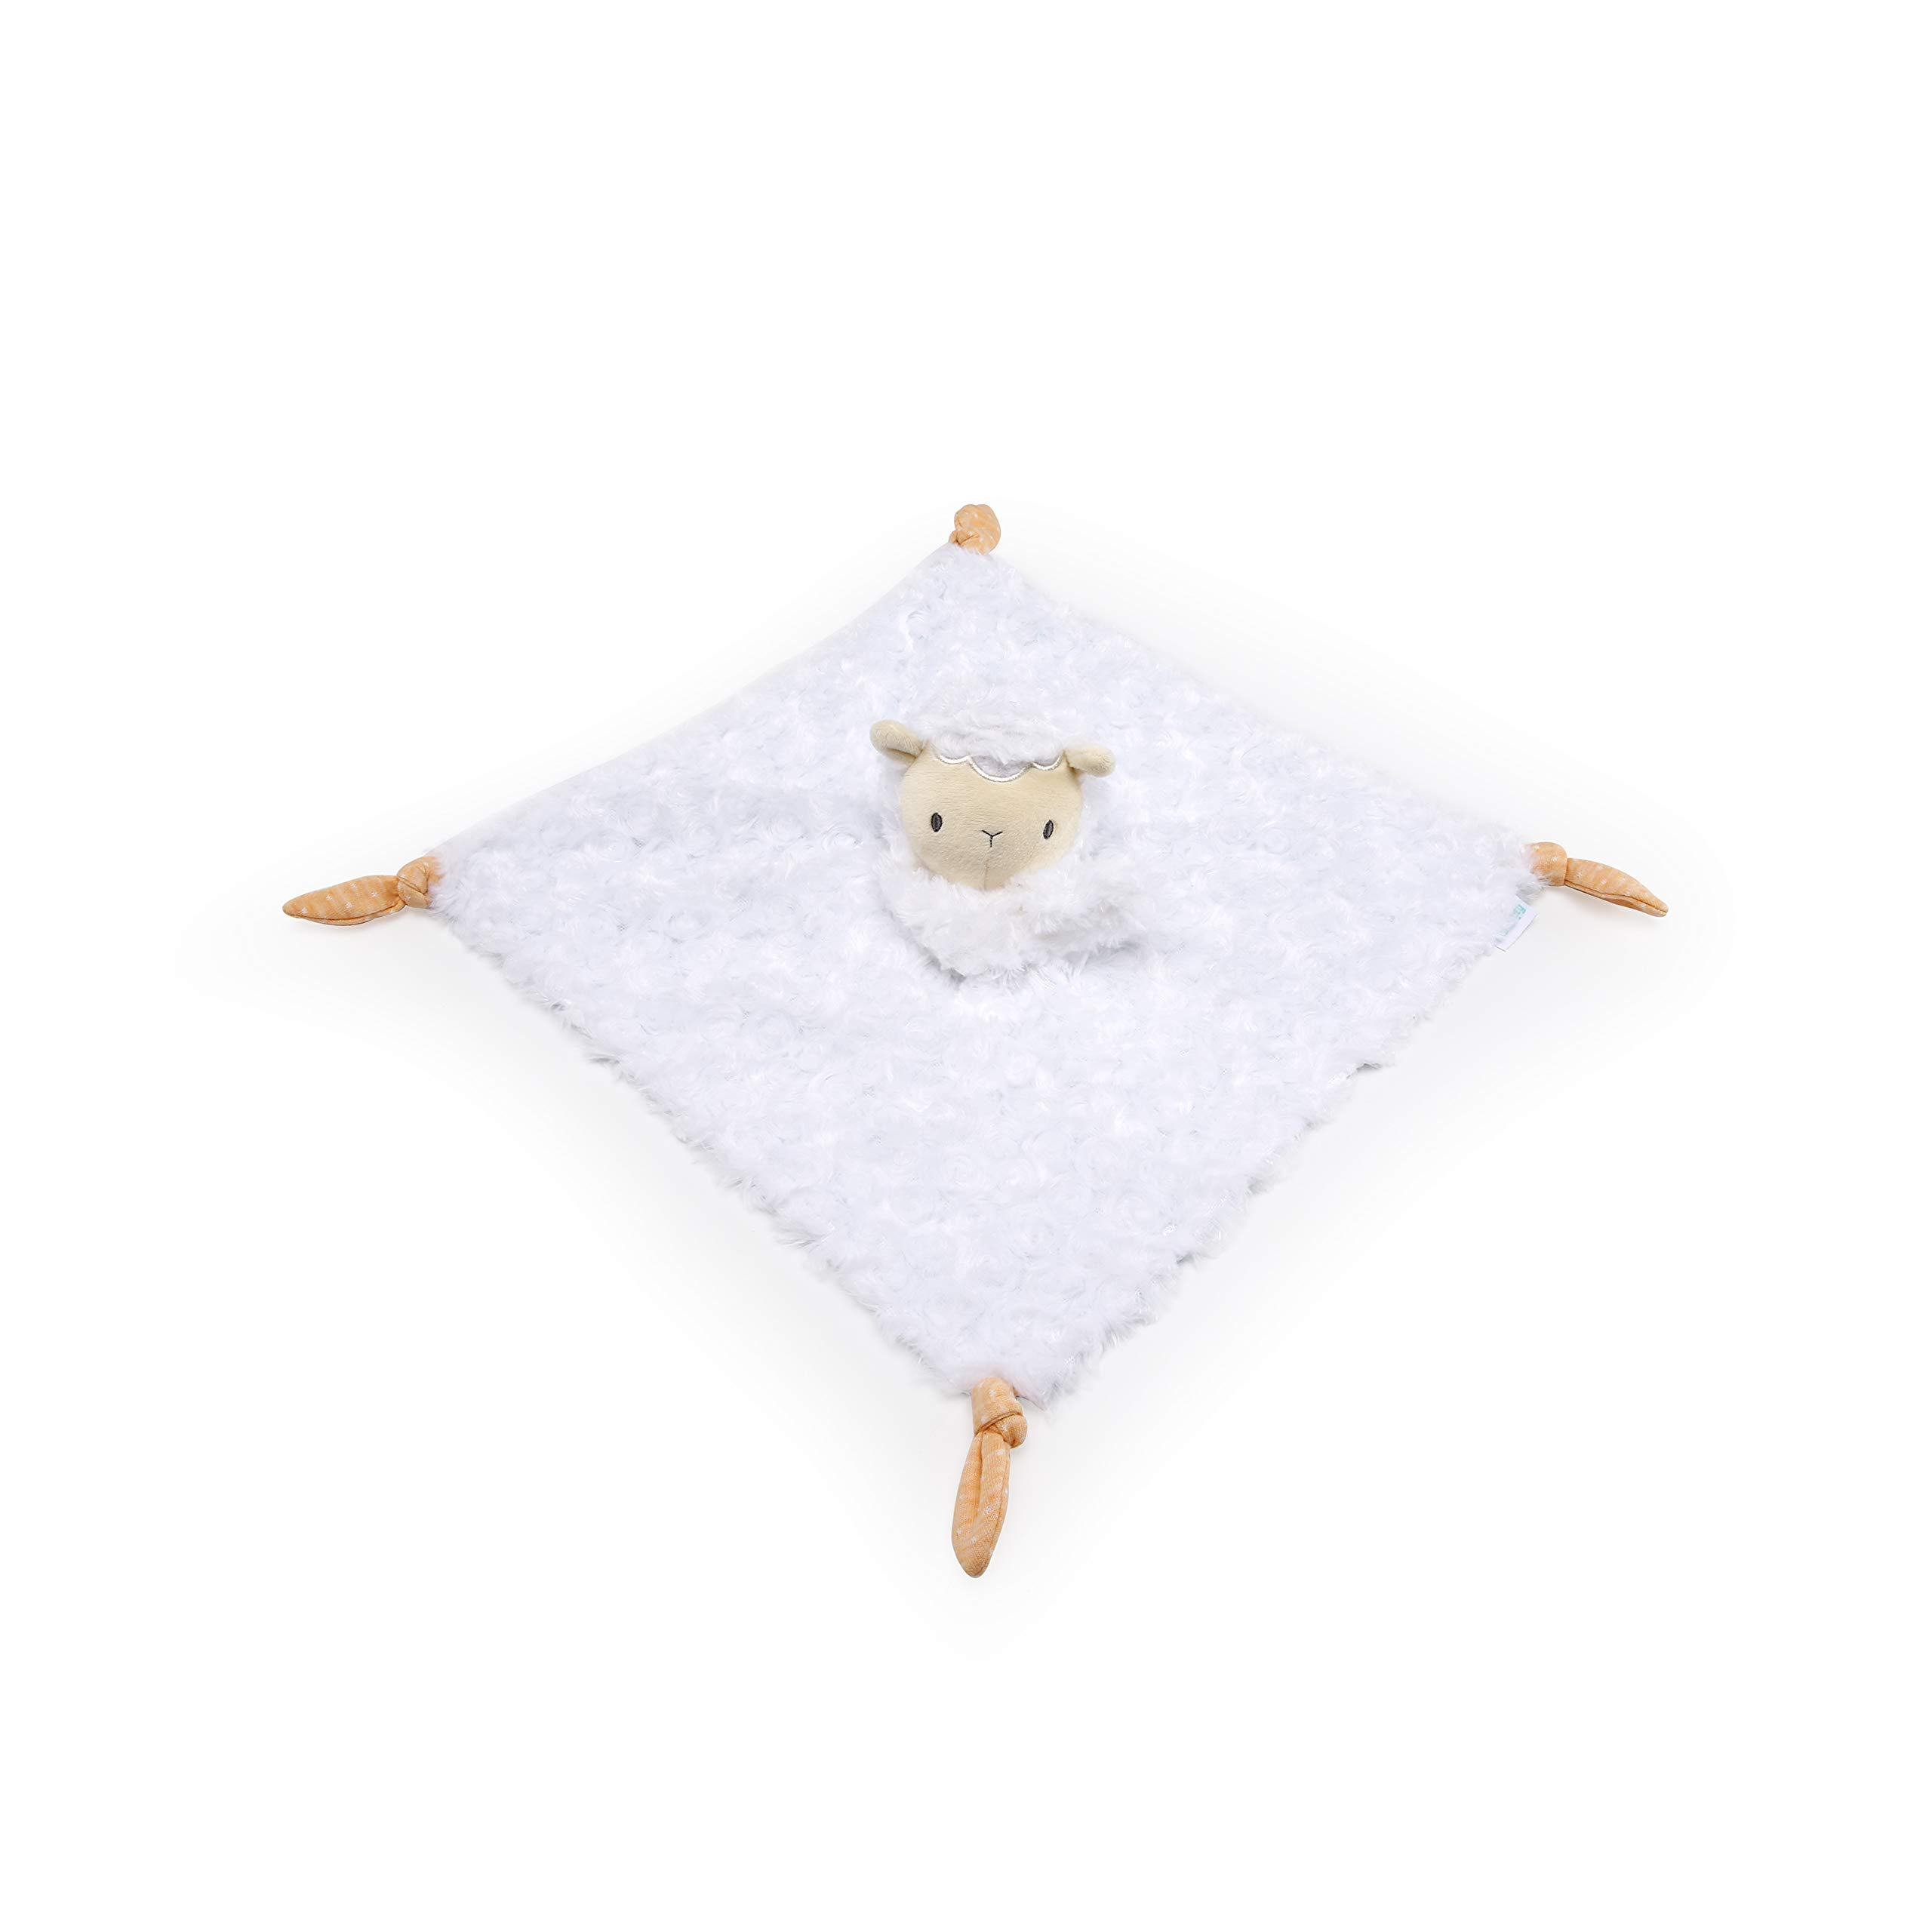 Ingenuity Premium Soft Plush Lovey Soothing Blanket - Sheppy The Sheep, Ages Newborn +